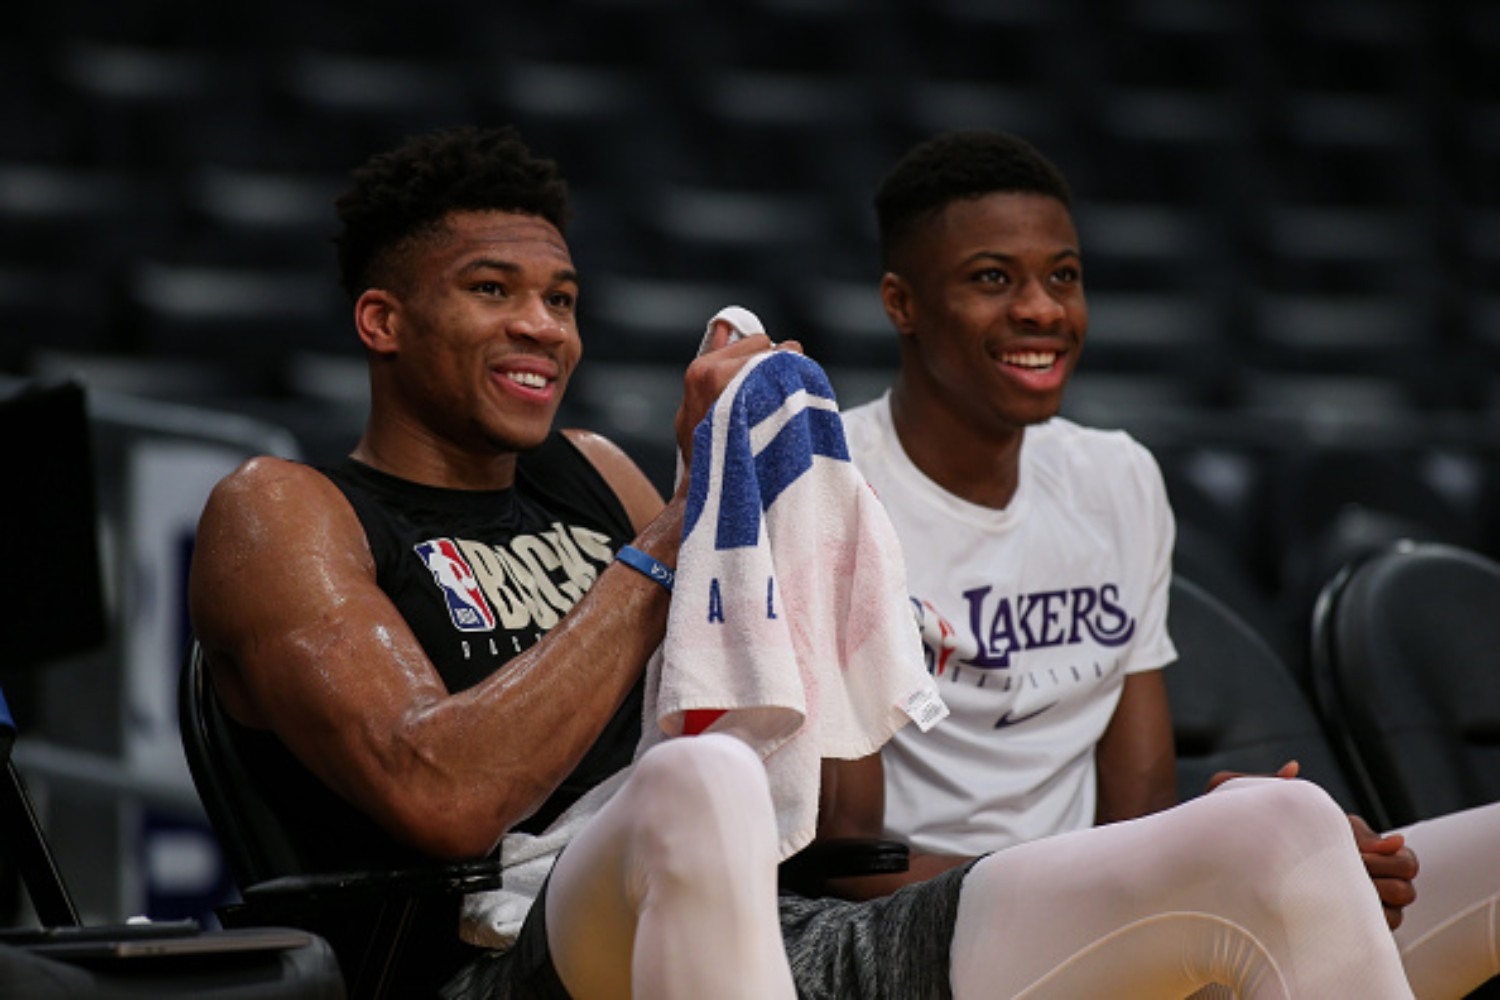 Giannis Antetokounmpo's younger brother is an NBA champion